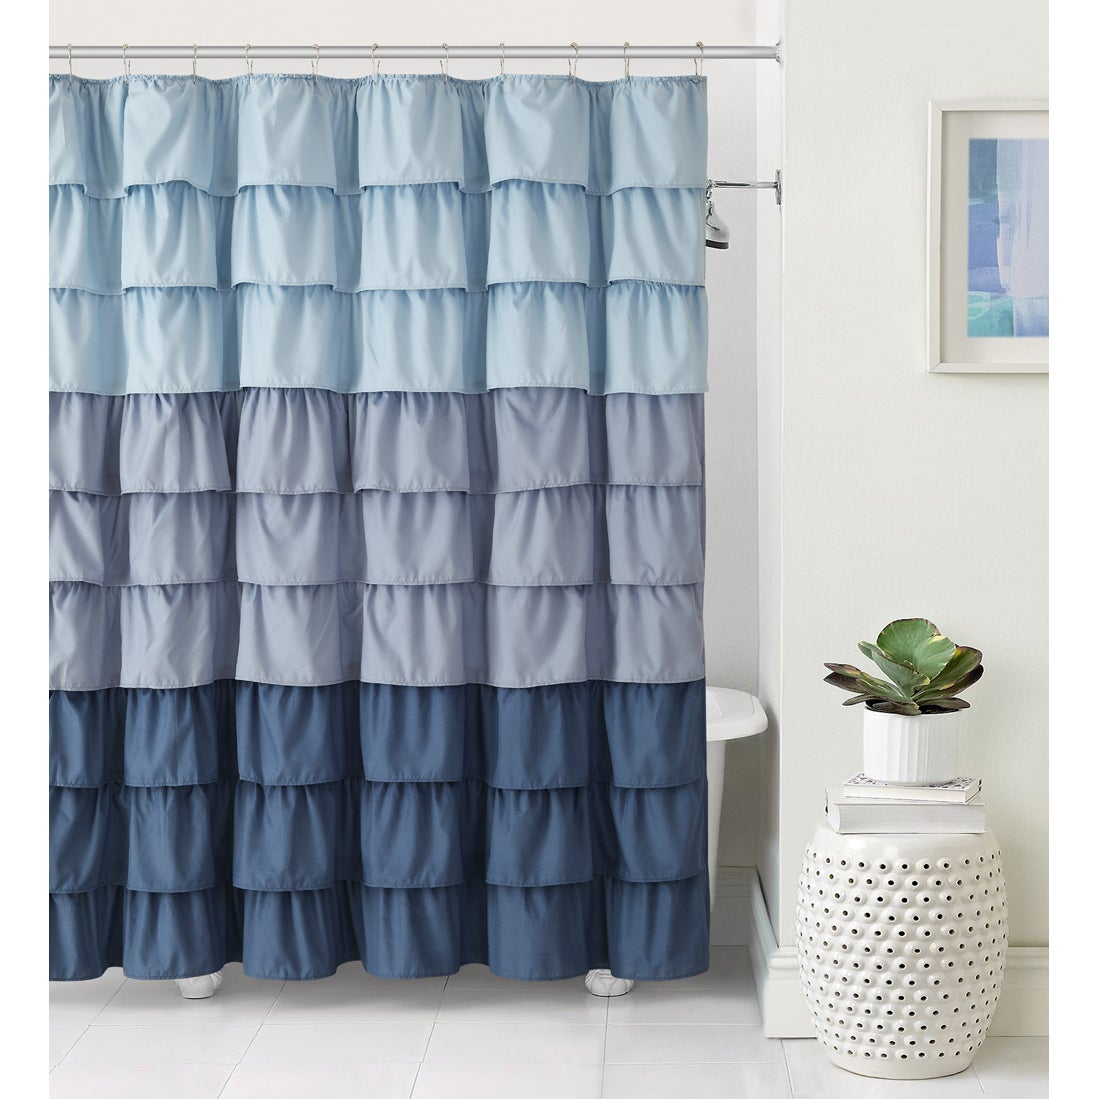 Shop VCNY Sally Ruffle Shower Curtain - 4 colors available - Free ...